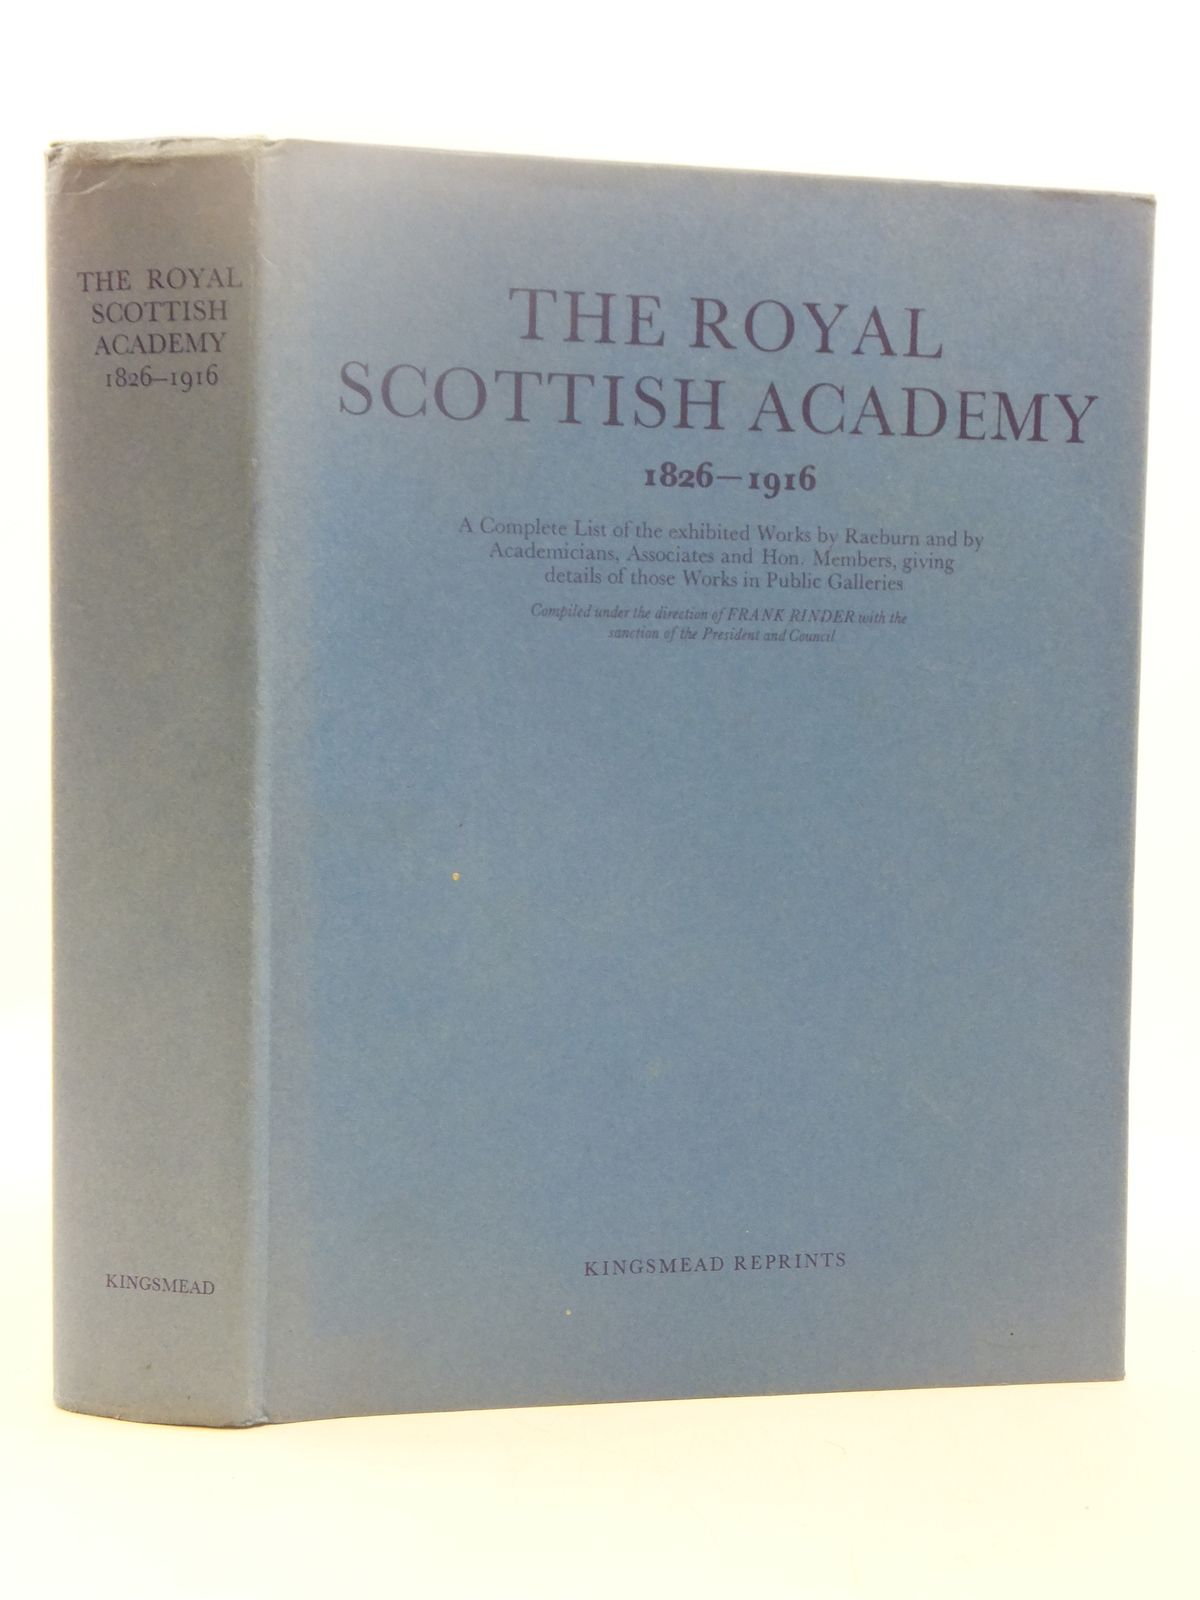 Photo of THE ROYAL SCOTTISH ACADEMY 1826-1916 written by Rinder, Frank published by Kingsmead Reprints (STOCK CODE: 1605156)  for sale by Stella & Rose's Books